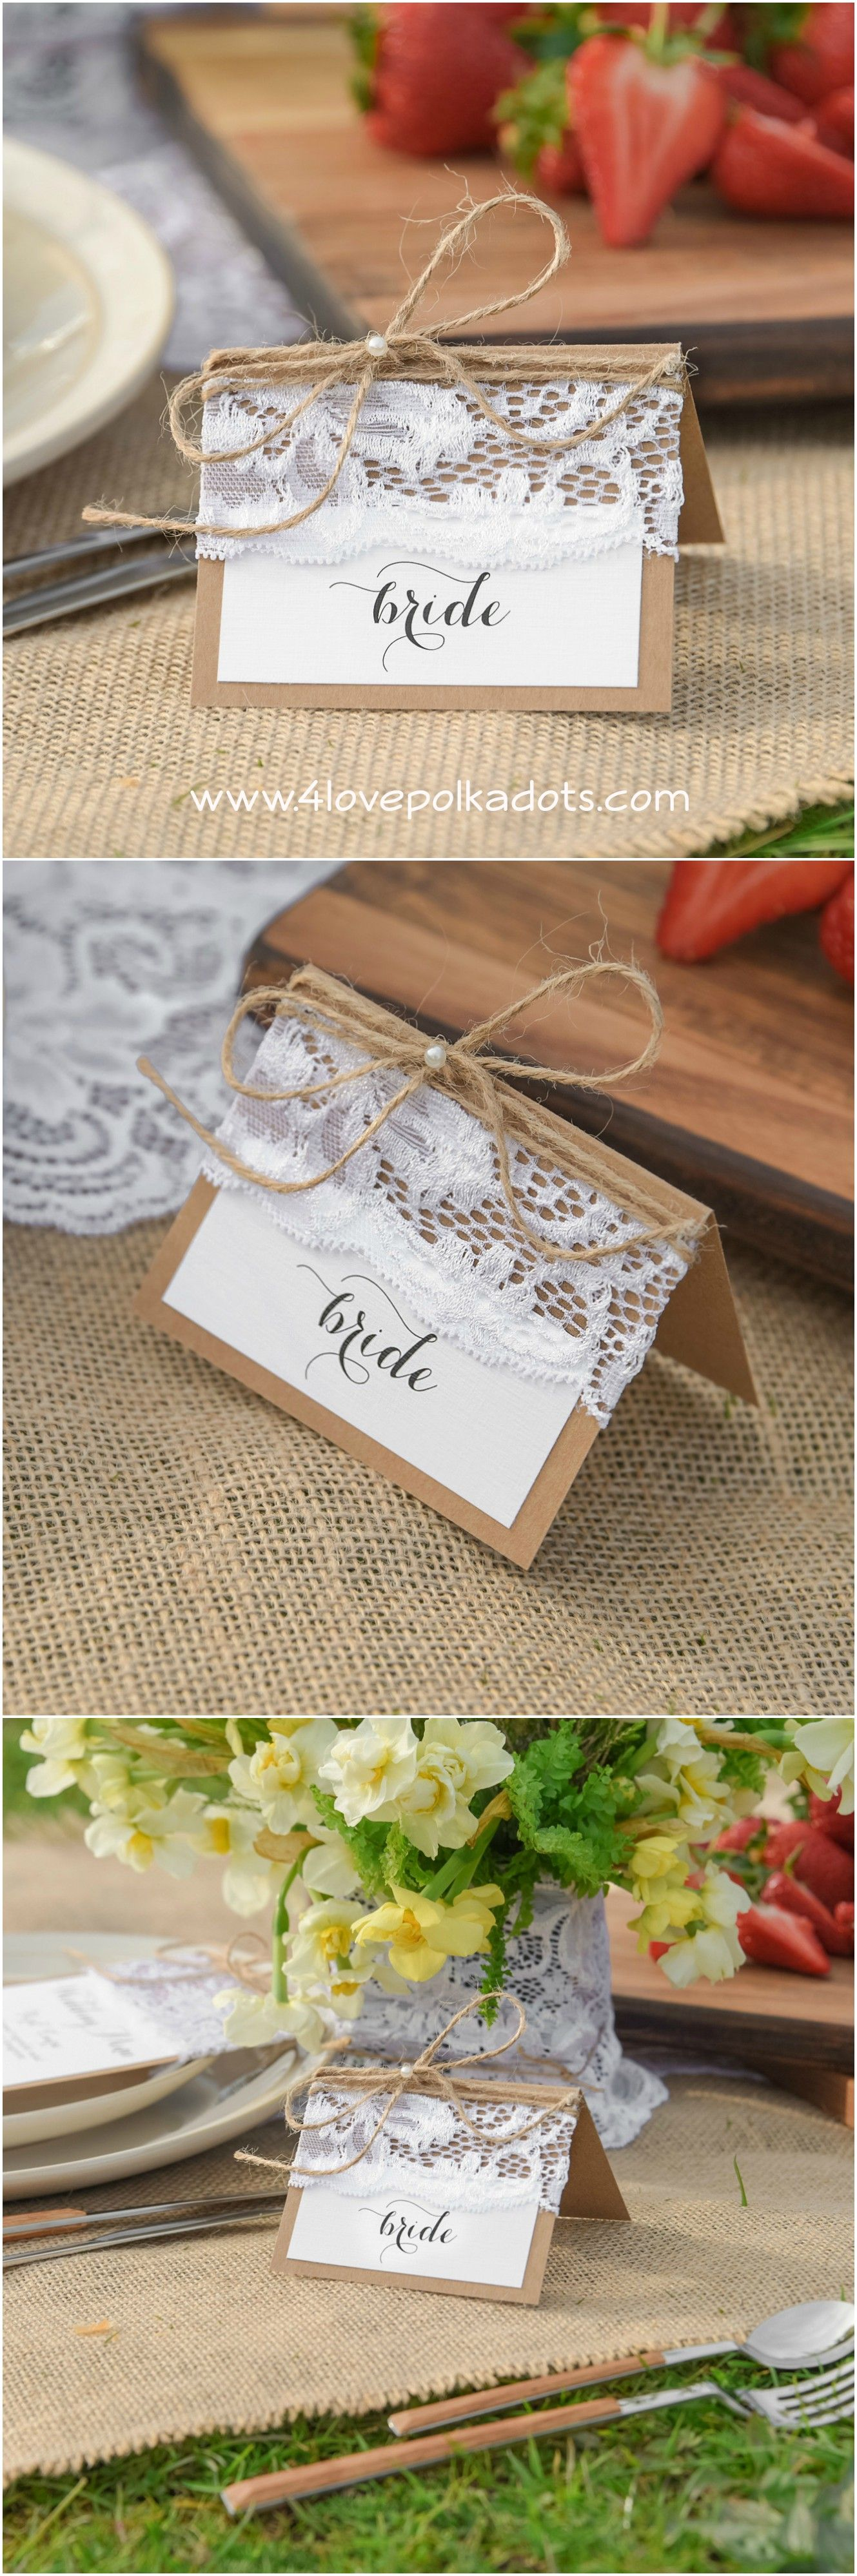 Cards Rustic place card 4lovepolkadots rusticwedding rusticplacecard